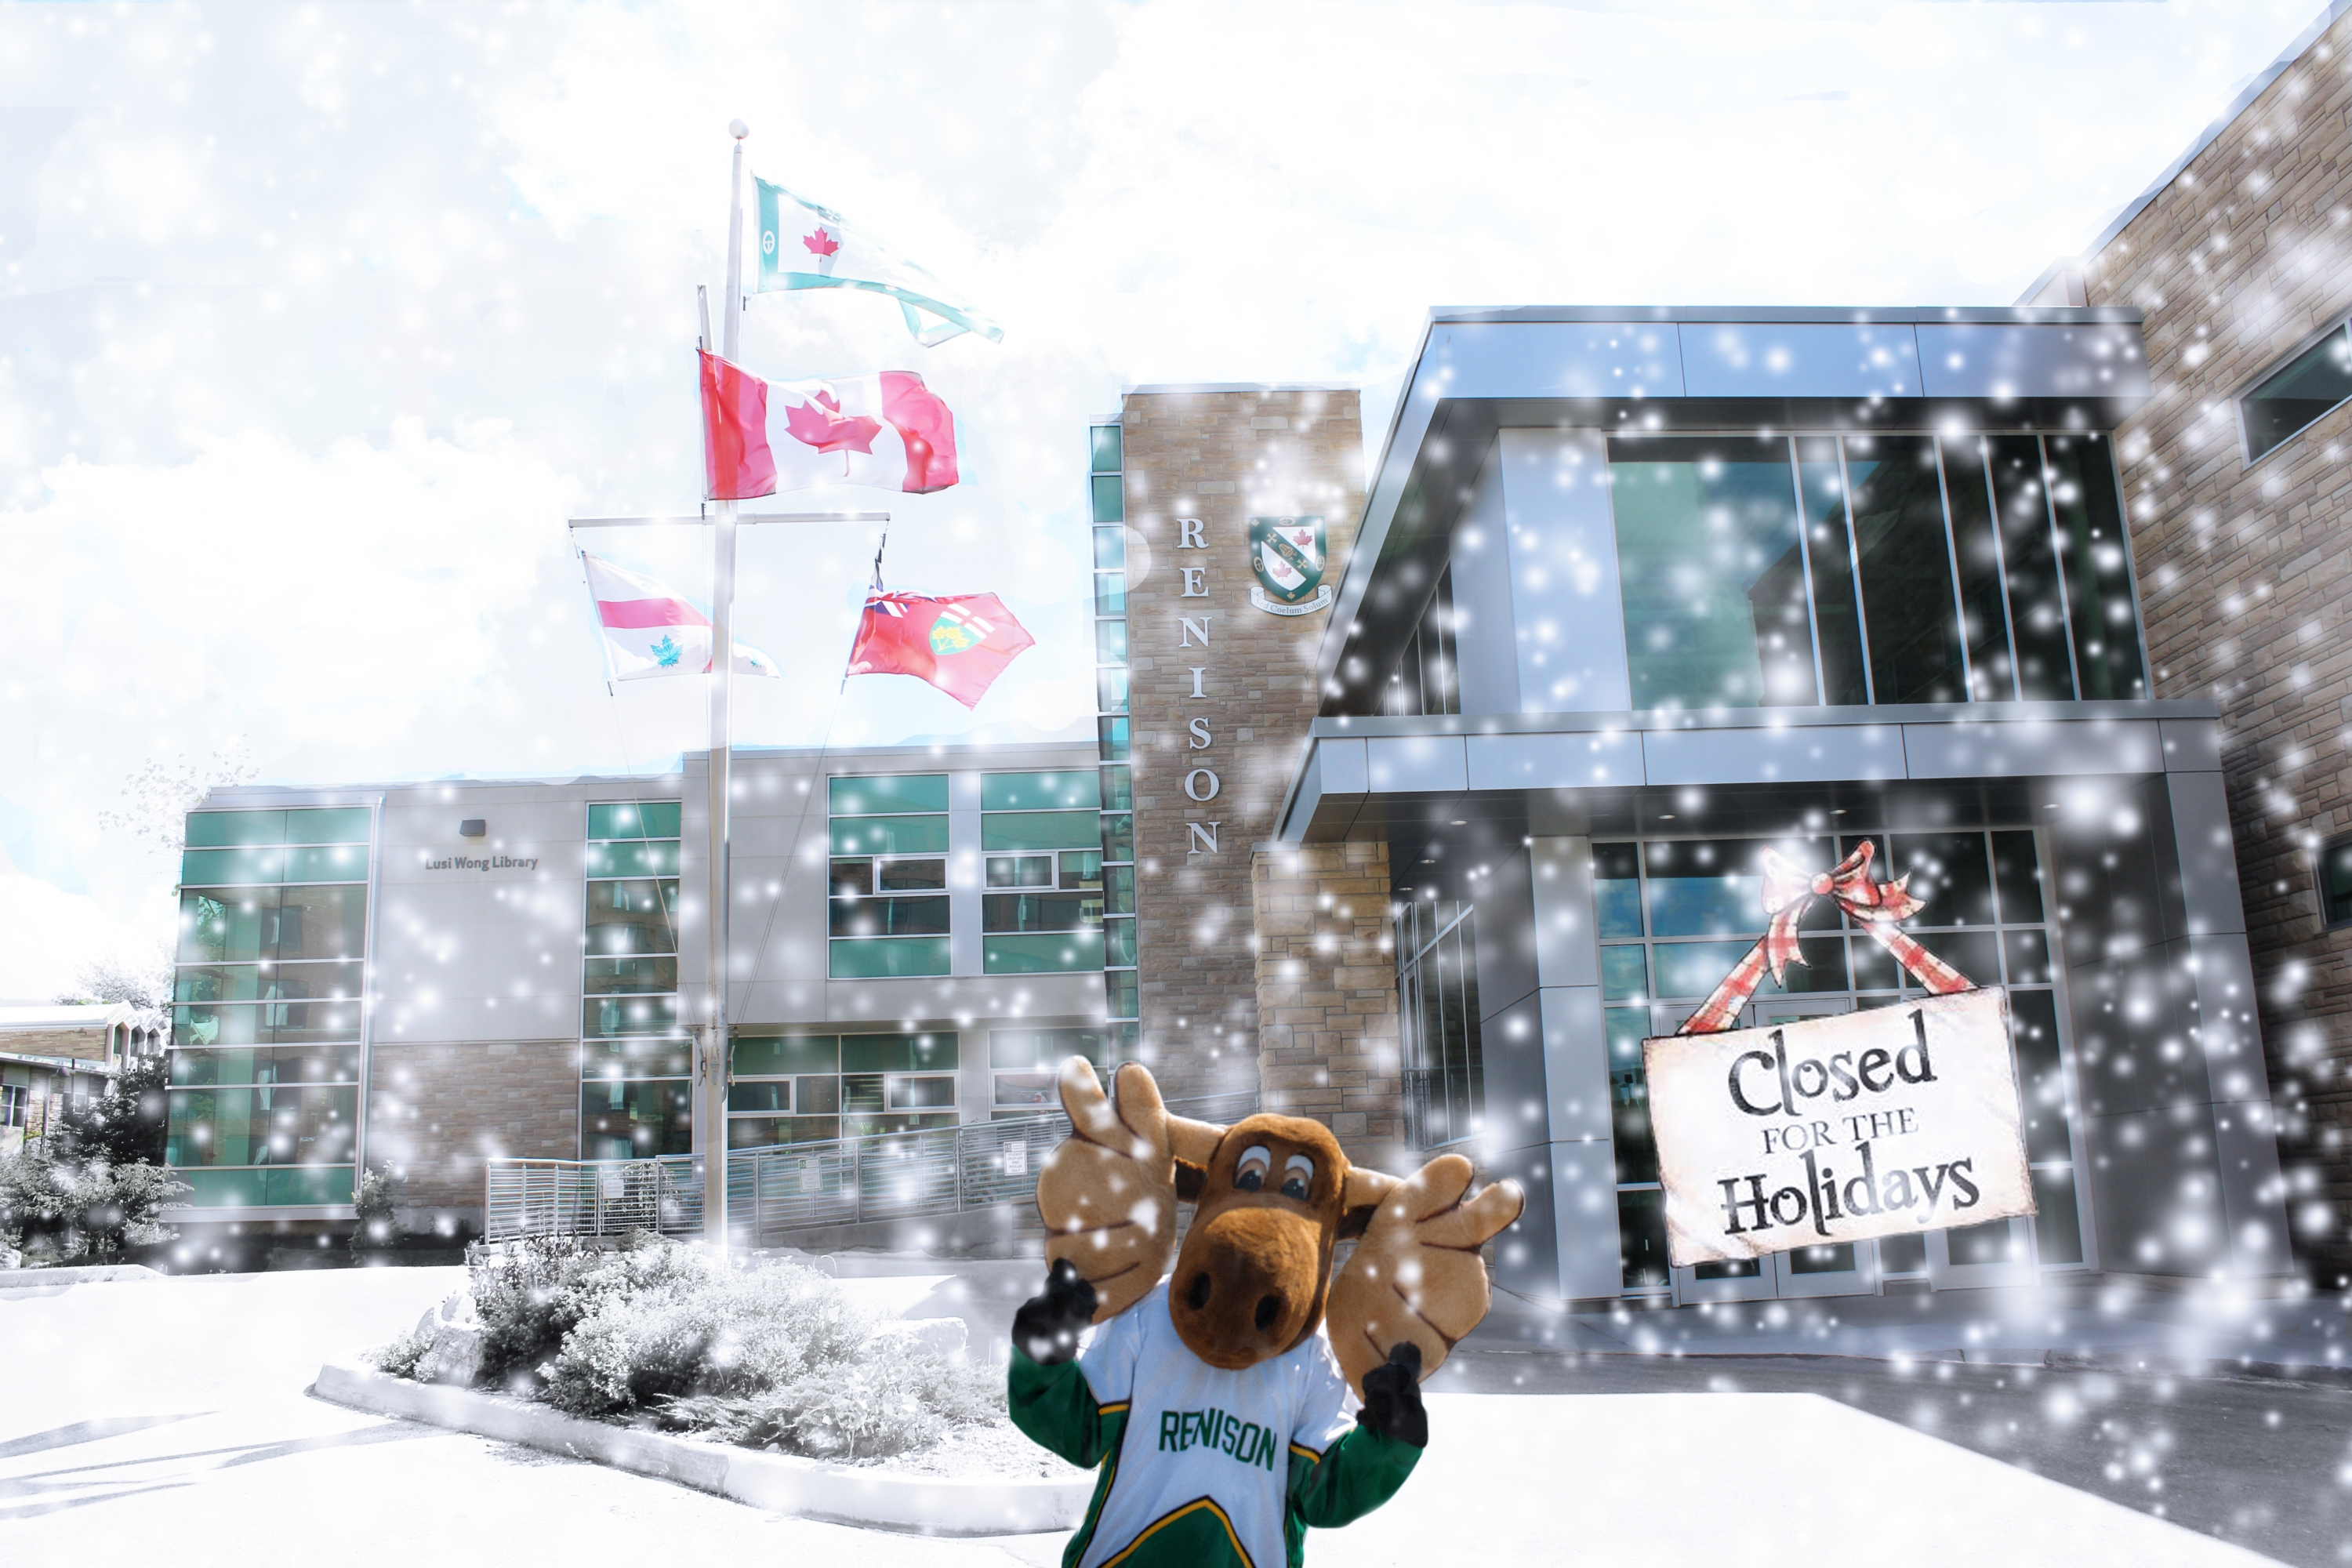 Happy Holidays from Renison! (Closed for the holidays)